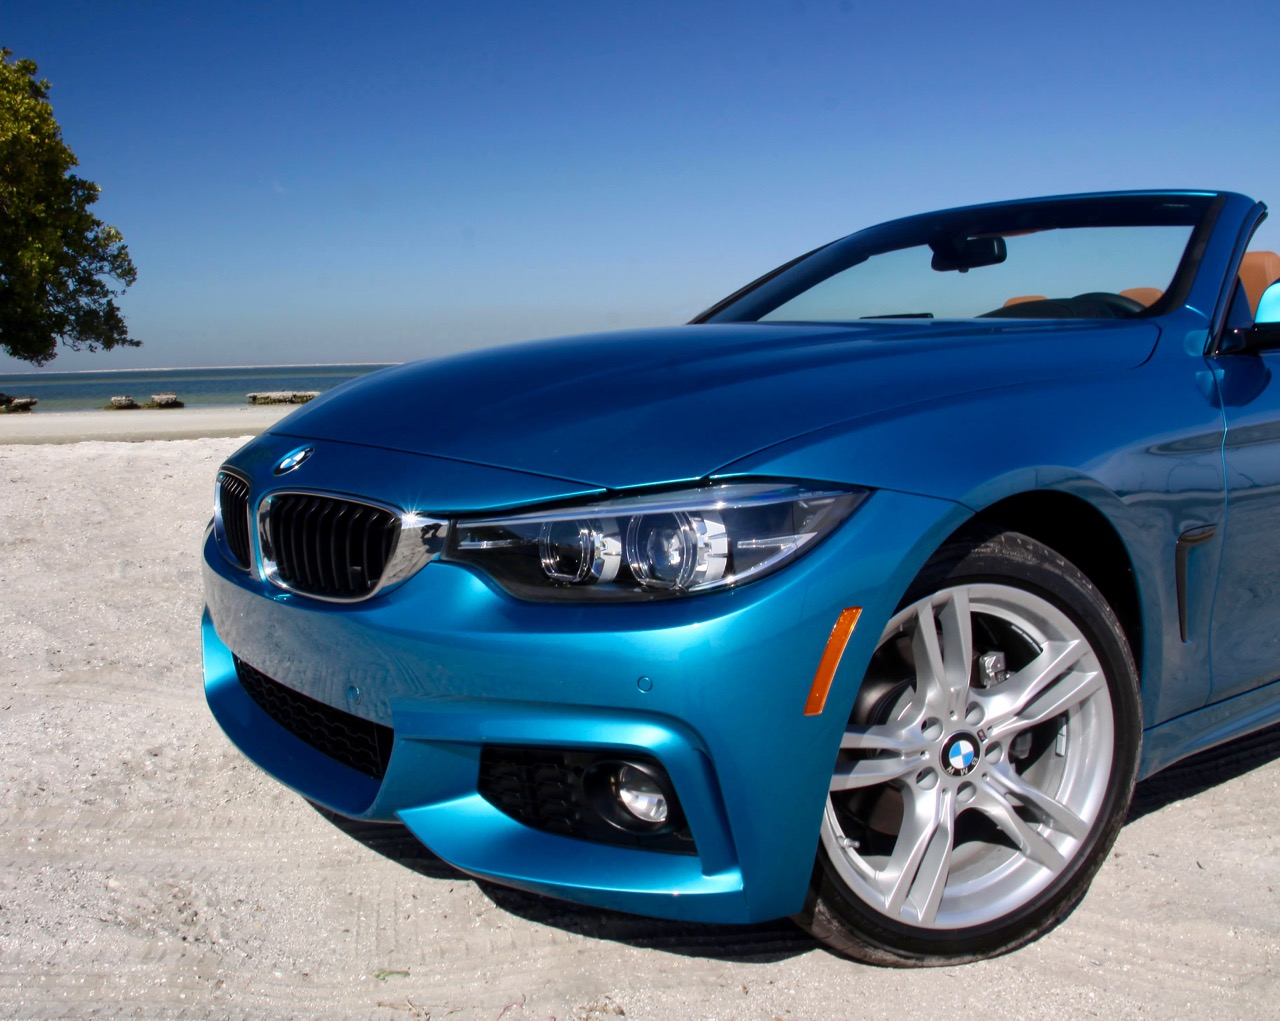 39 18 bmw 430i cab fun in the florida sun car guy chronicles for Sun motor cars bmw